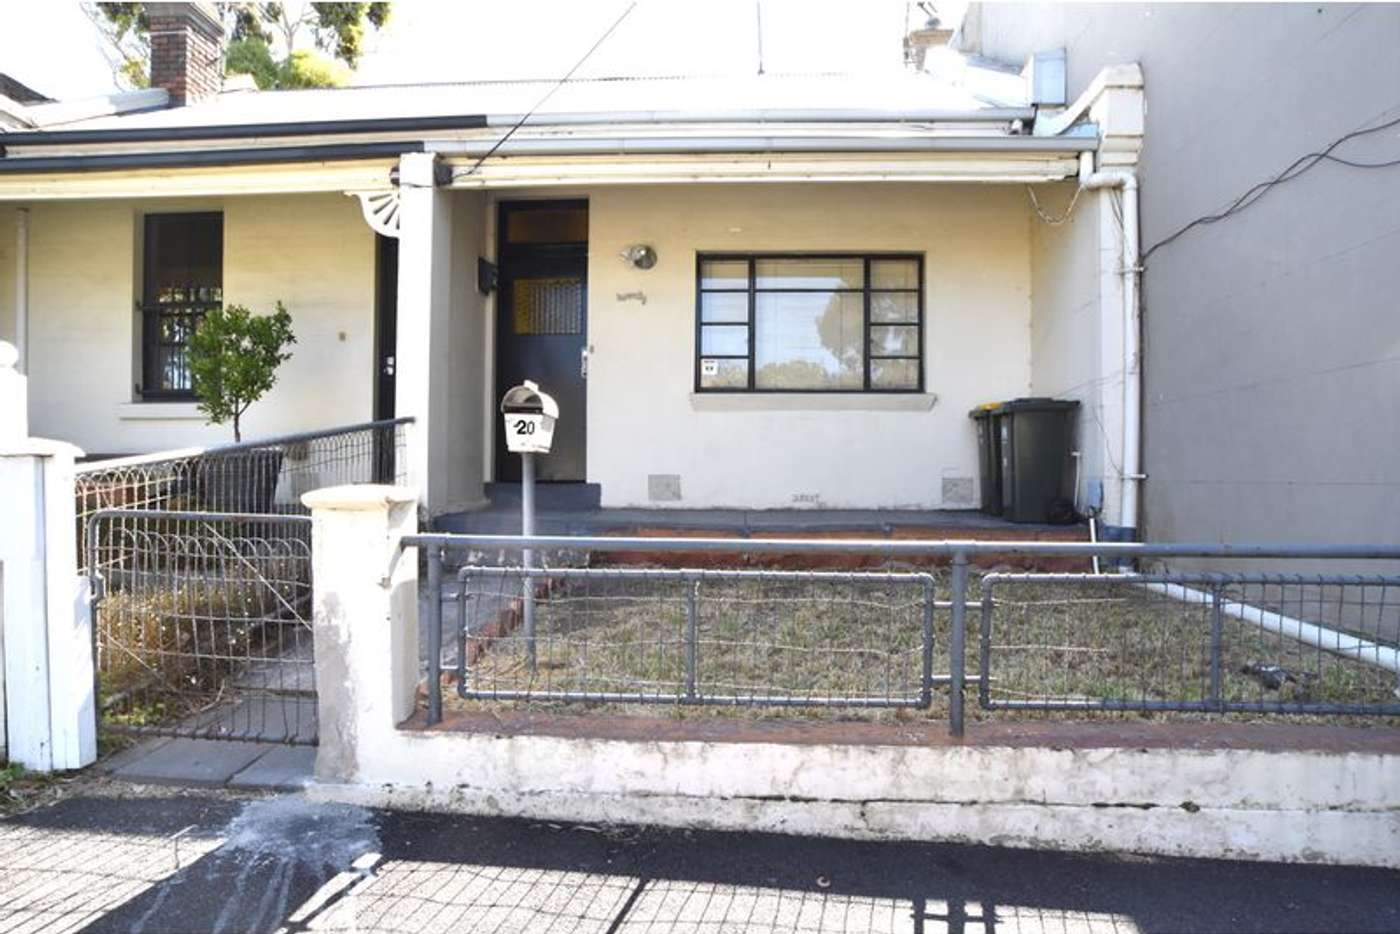 Main view of Homely house listing, 20 Molesworth Street, North Melbourne VIC 3051